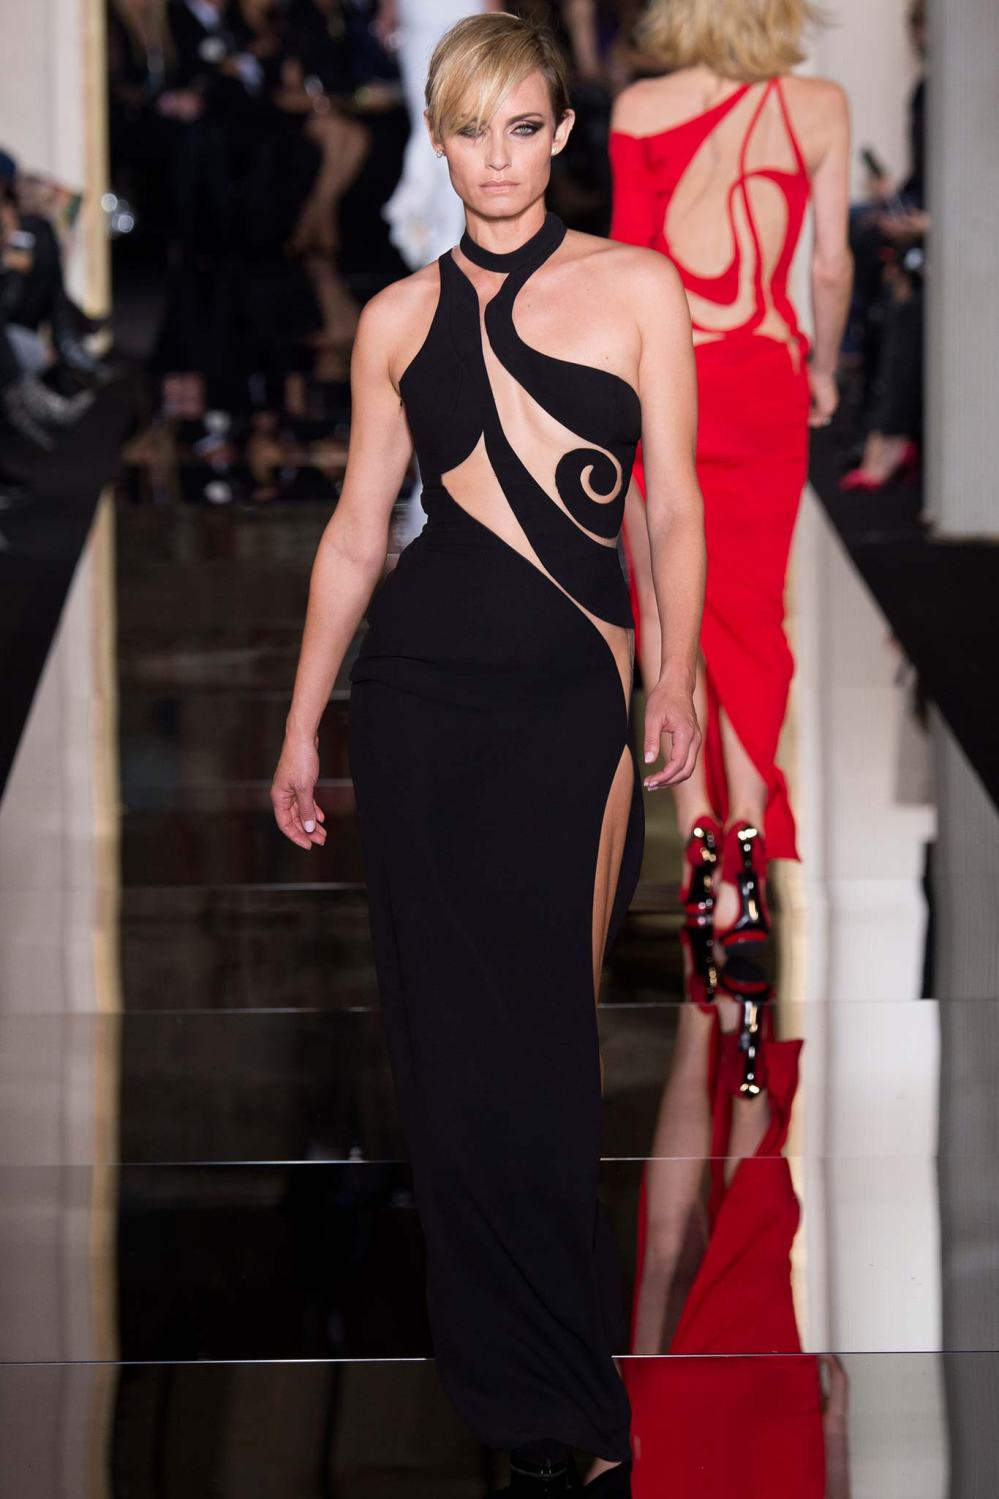 Atelier Versace, Spring/Summer 2015 Look 46 Model : Amber Valletta Photo: Kim Weston Arnold/Indigitalimages.com